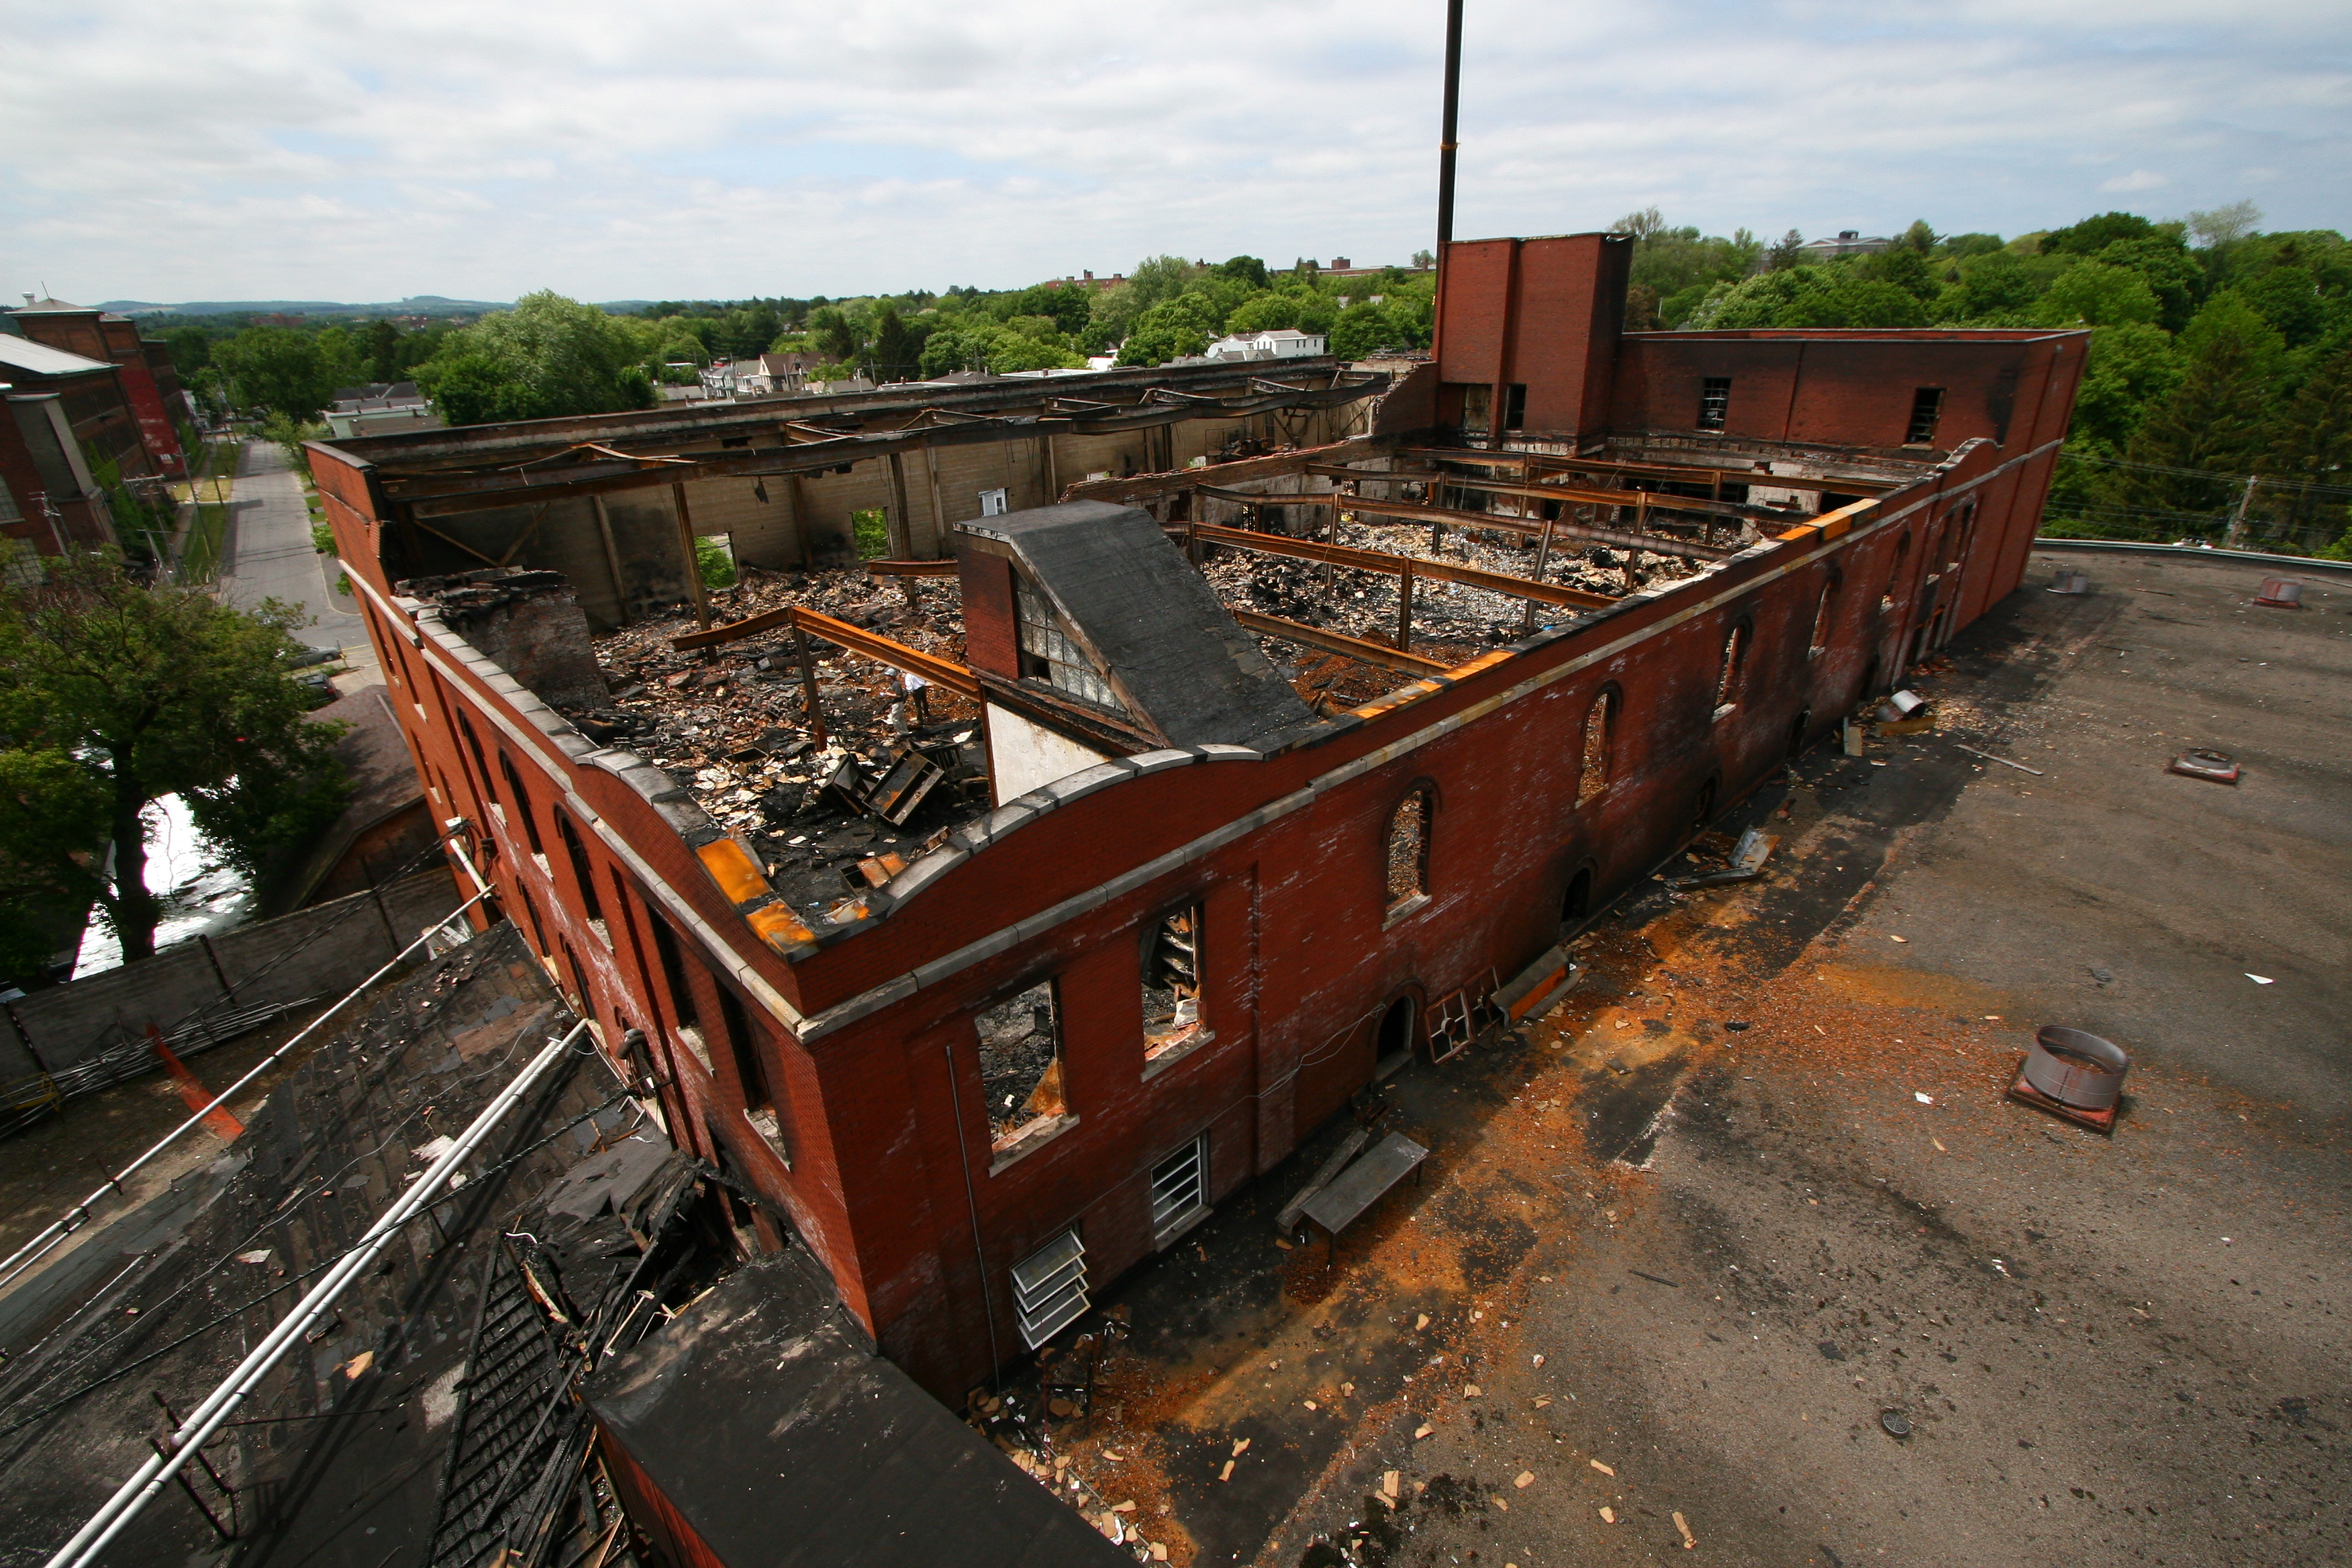 Commercial Business Fire Damage Insurance Claim Adjusters International